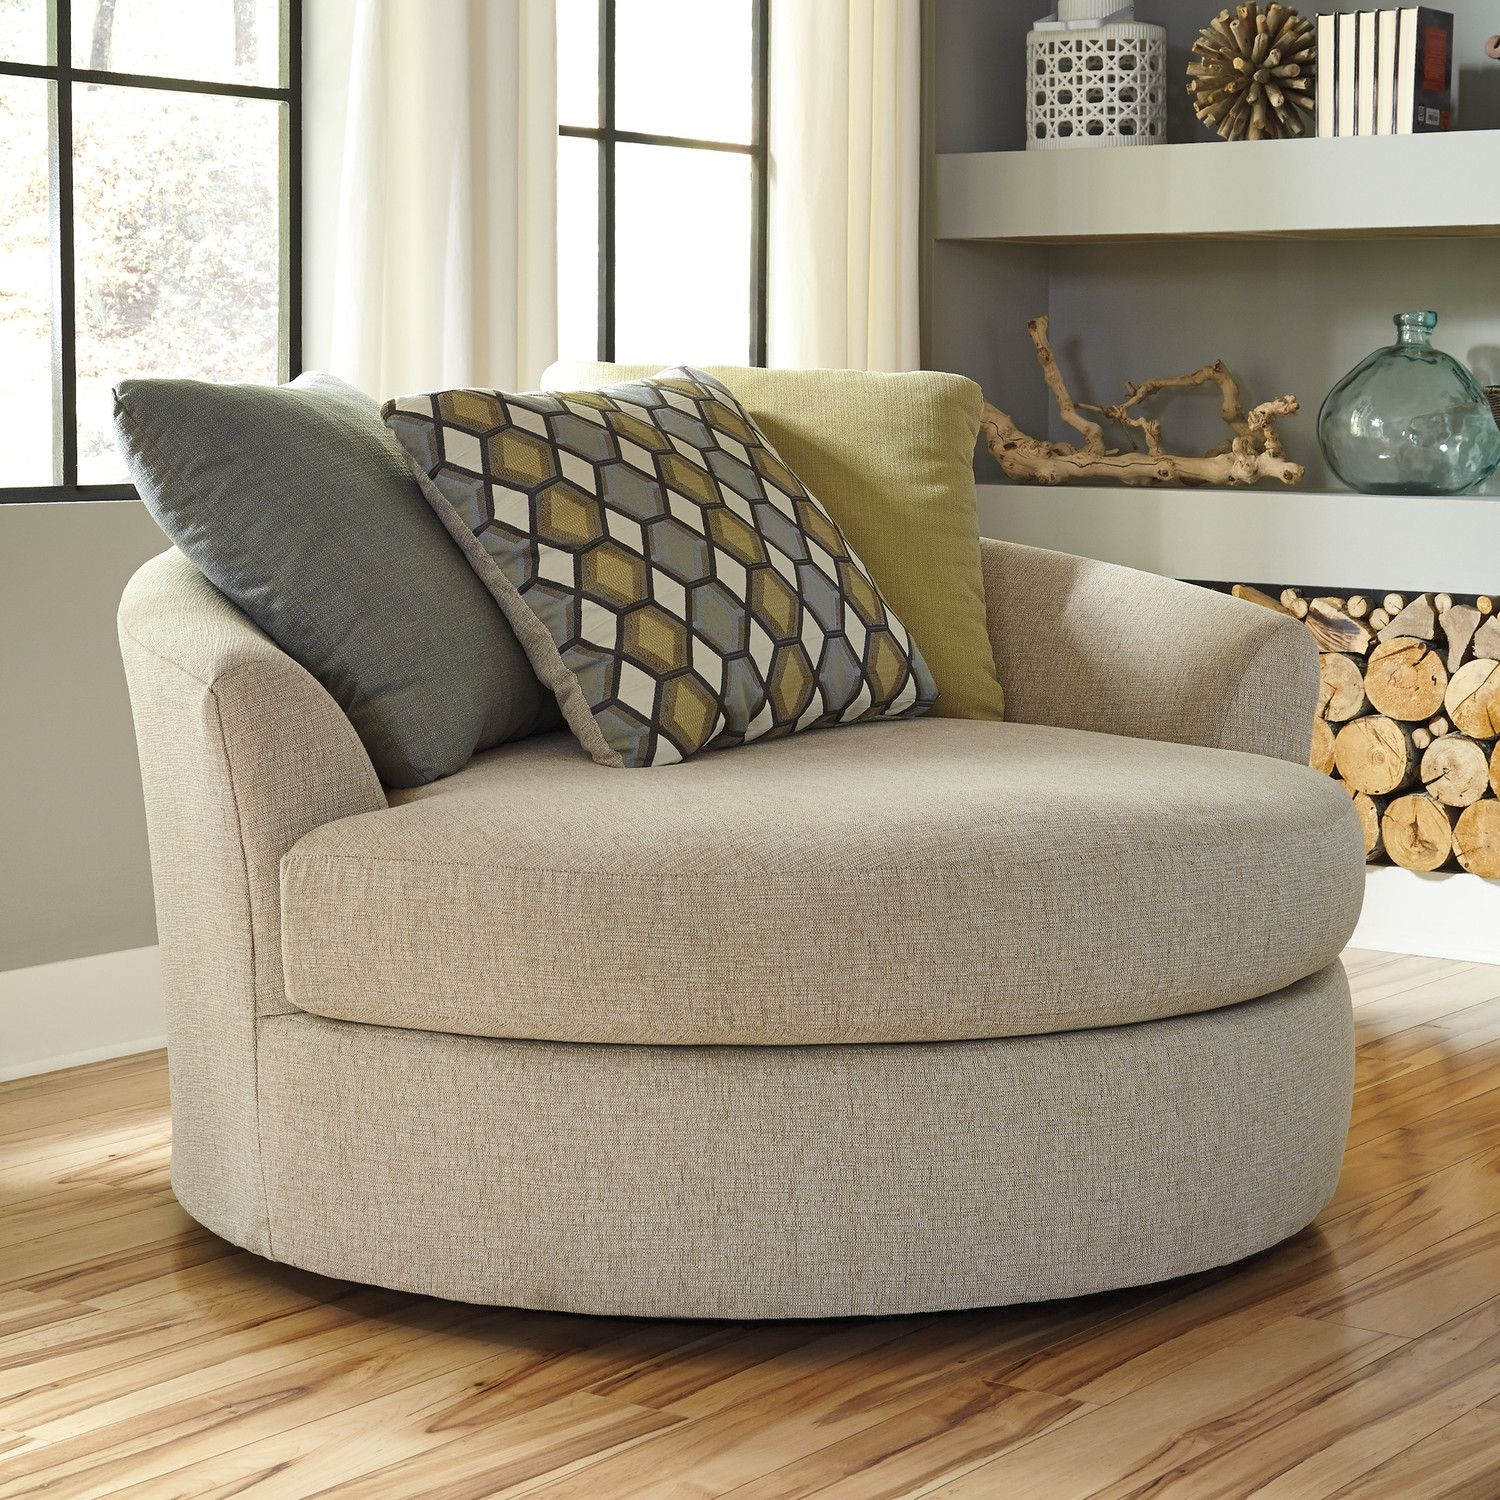 25 Example World Market Maddox Chair | Galleryeptune For Maddox Oversized Sofa Chairs (Photo 5 of 25)